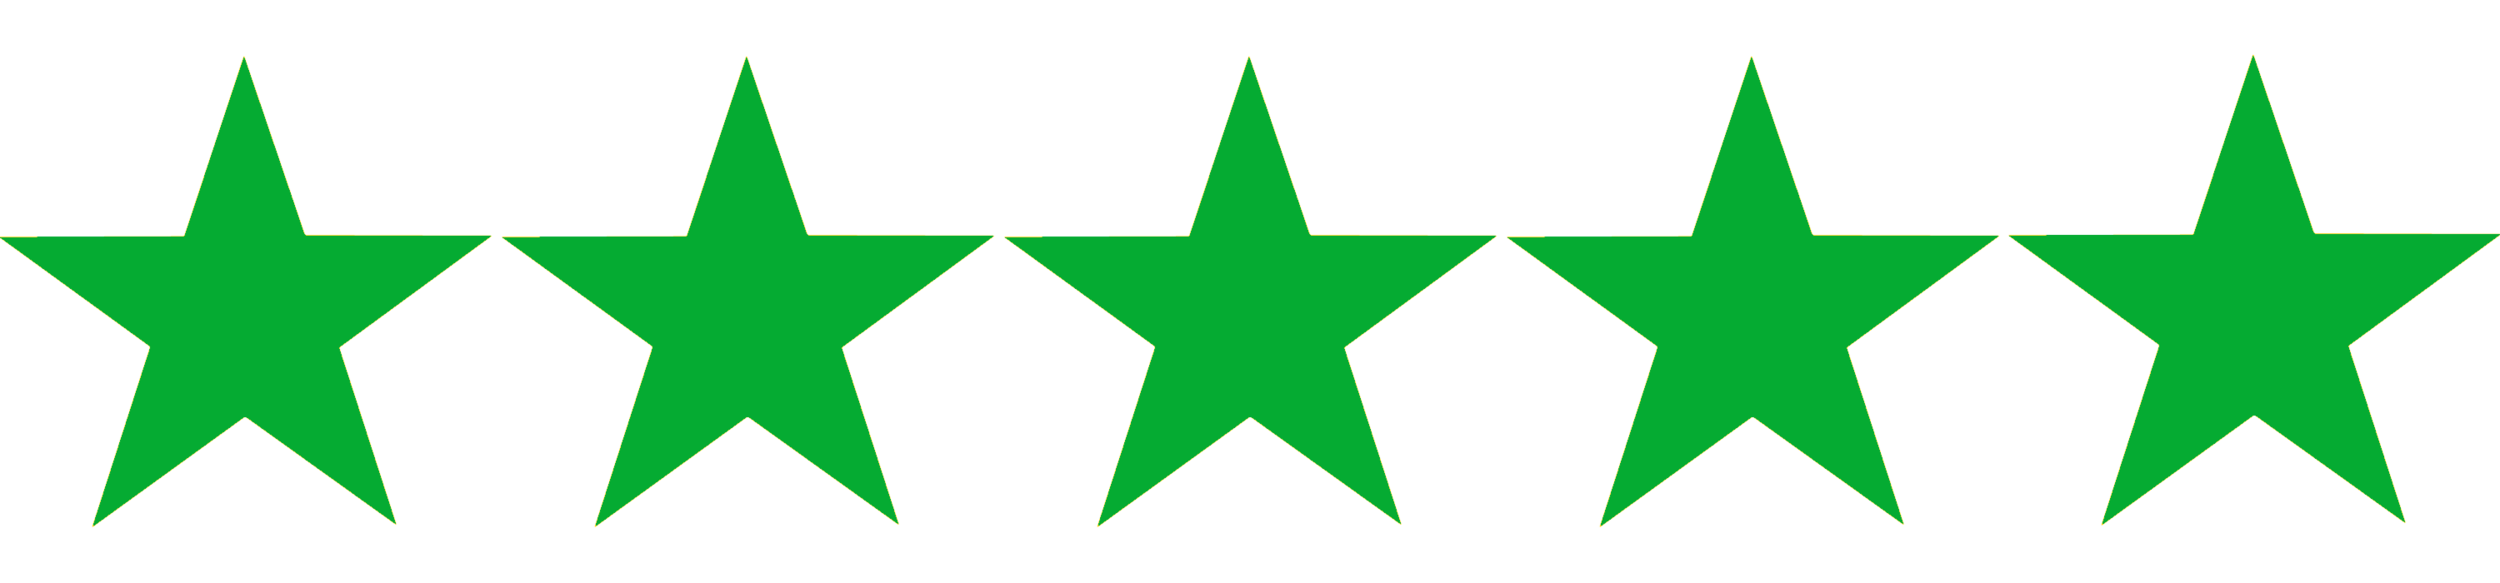 green-5-stars.png